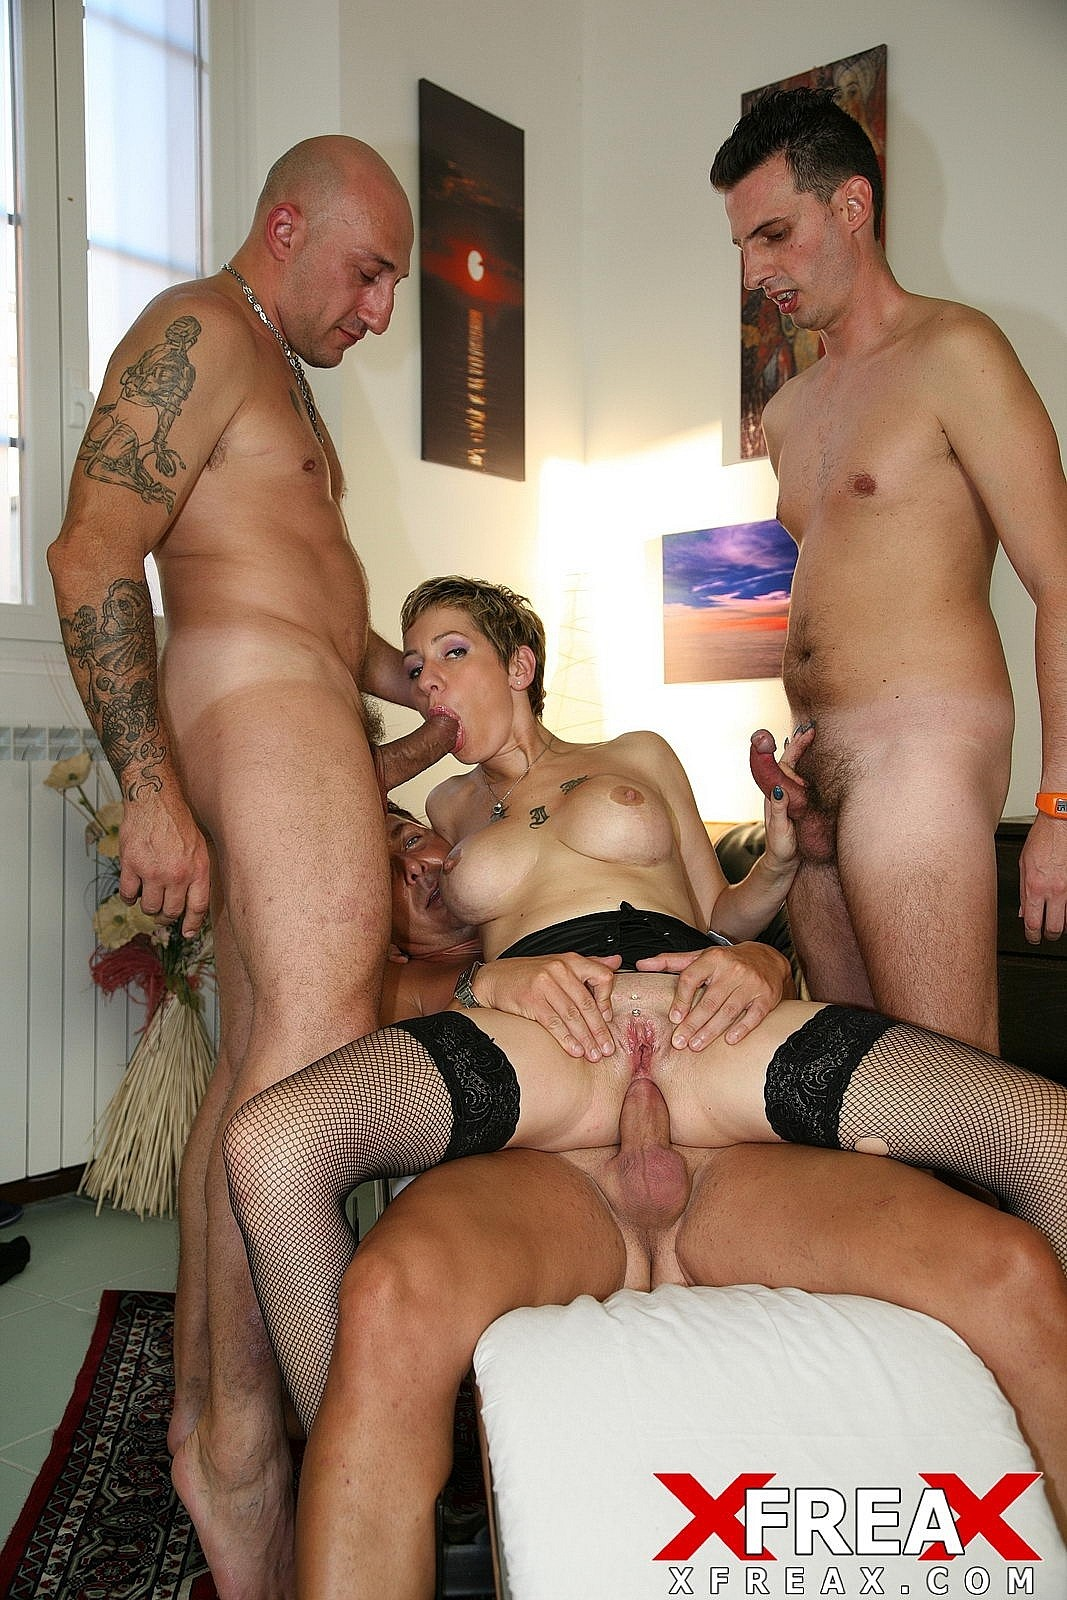 [EuroGangBangs] Gang Bang for Giada da Vinci